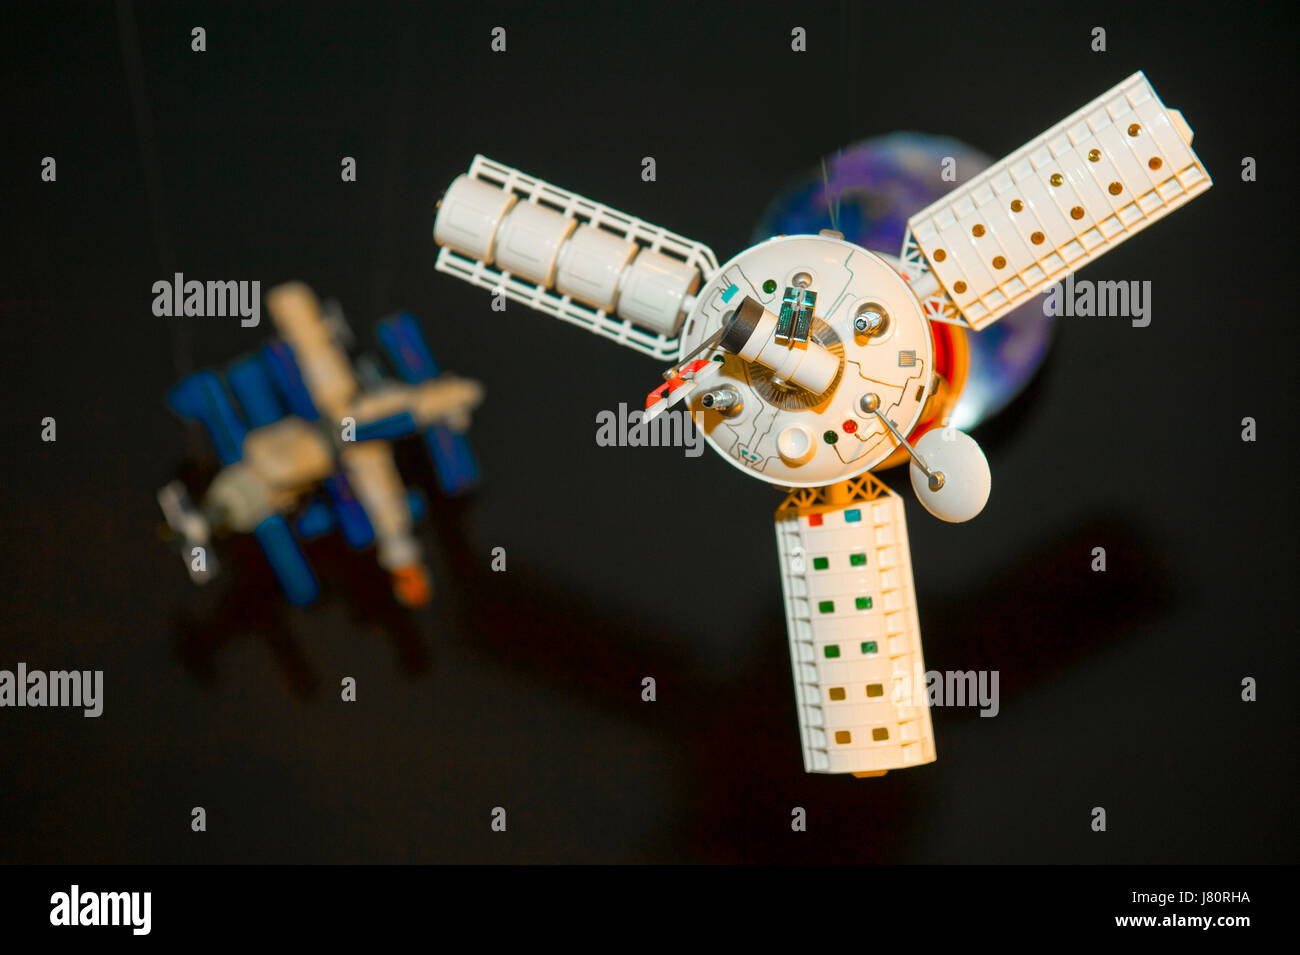 sign signal space satellite television tv televisions satelite wave firmament - Stock Image